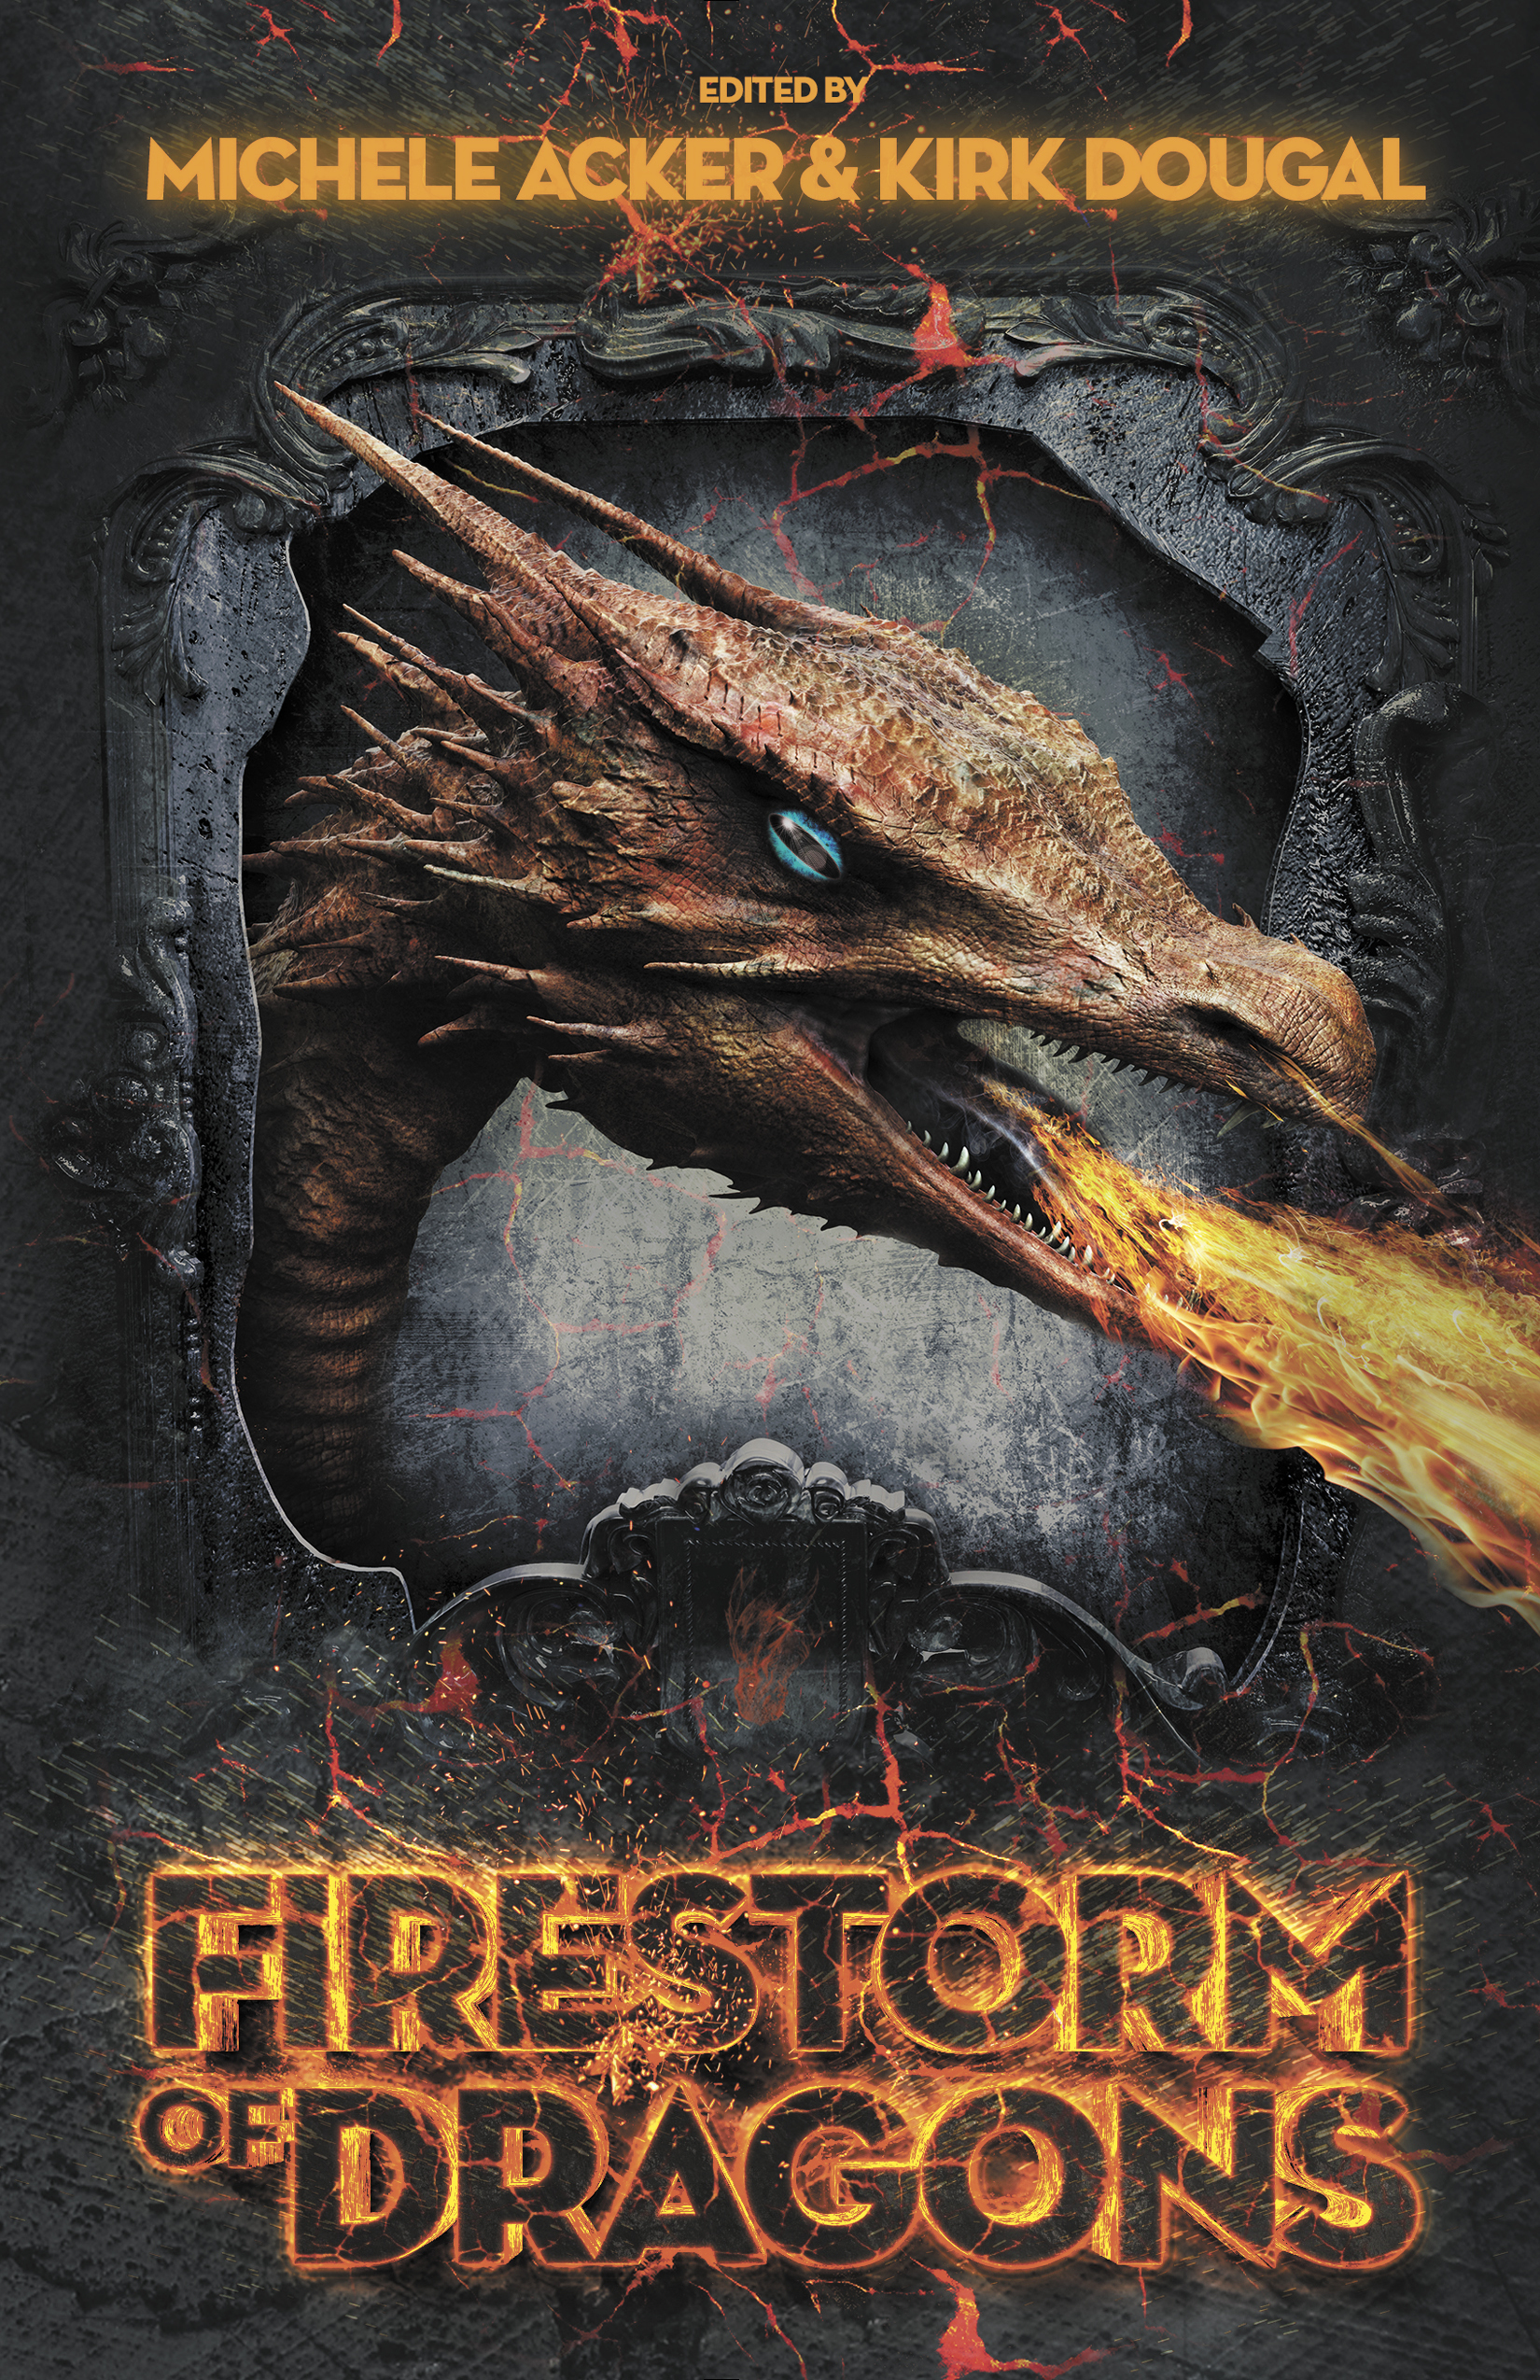 Firestorm of Dragons Edited by Michele Acker and Kirk Dougal 00025